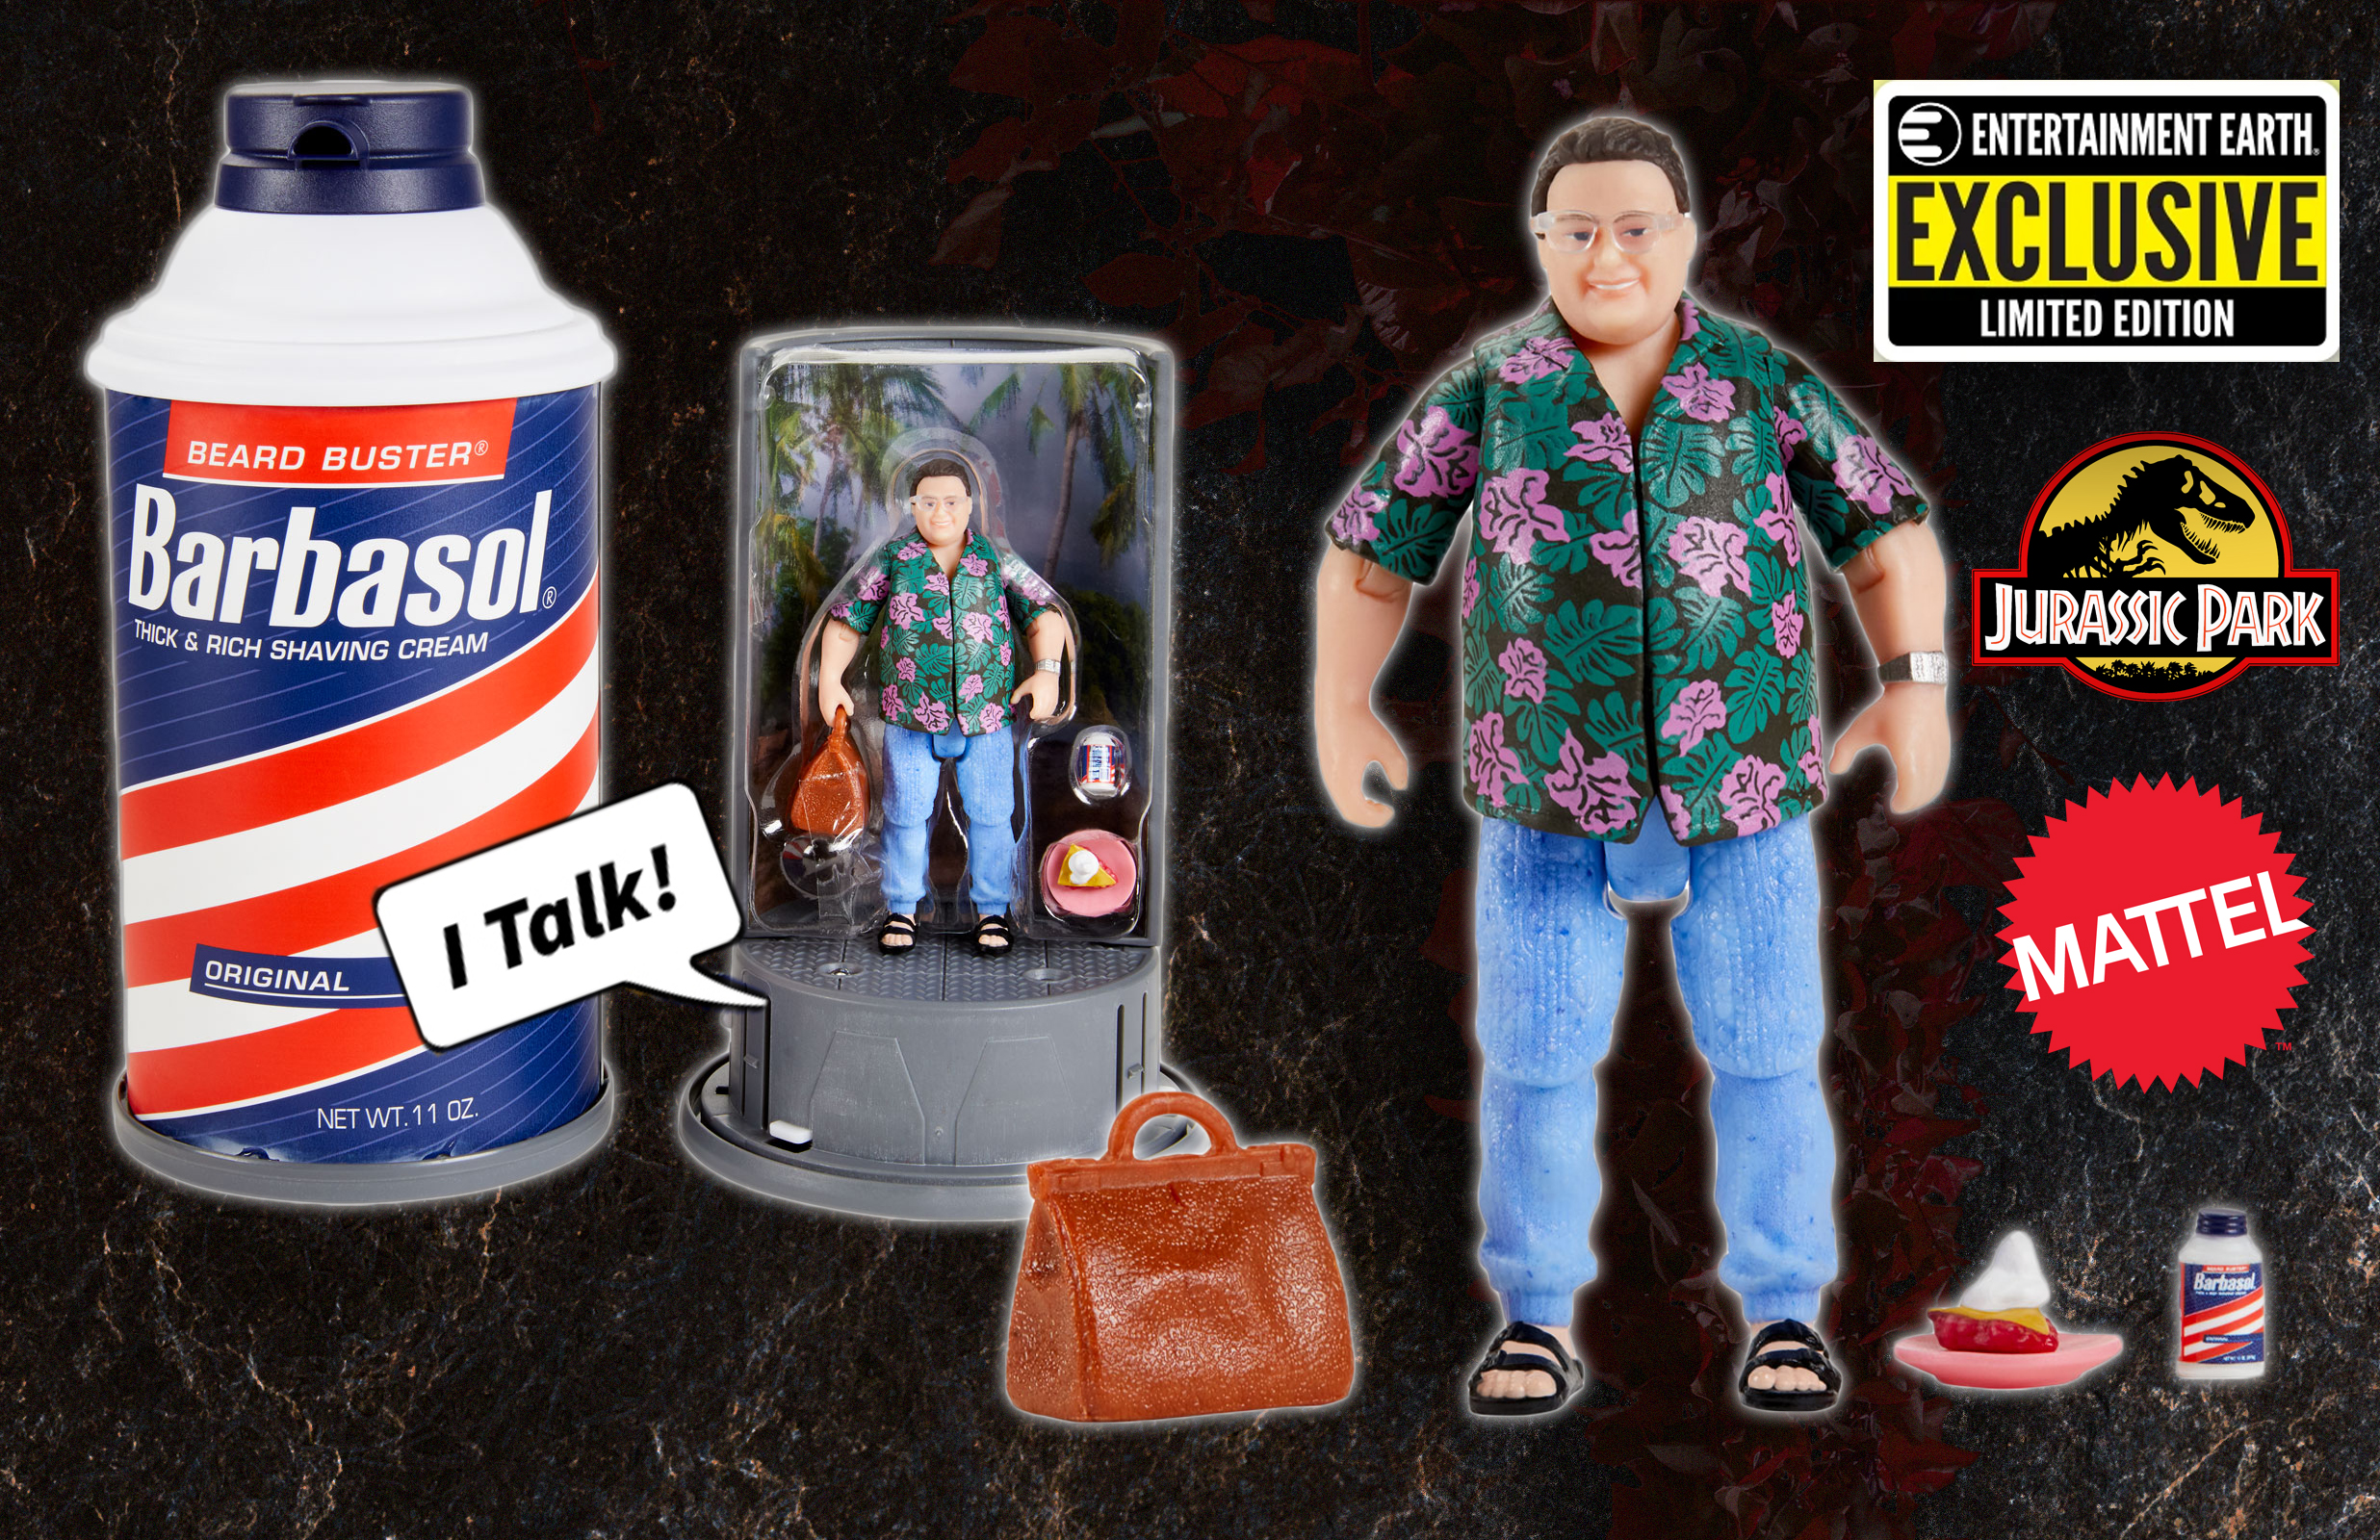 2020 SDCC Exclusive Jurassic Park Dennis Nedry Barbasol Set Announced – Pre-order Before He Goes Extinct!